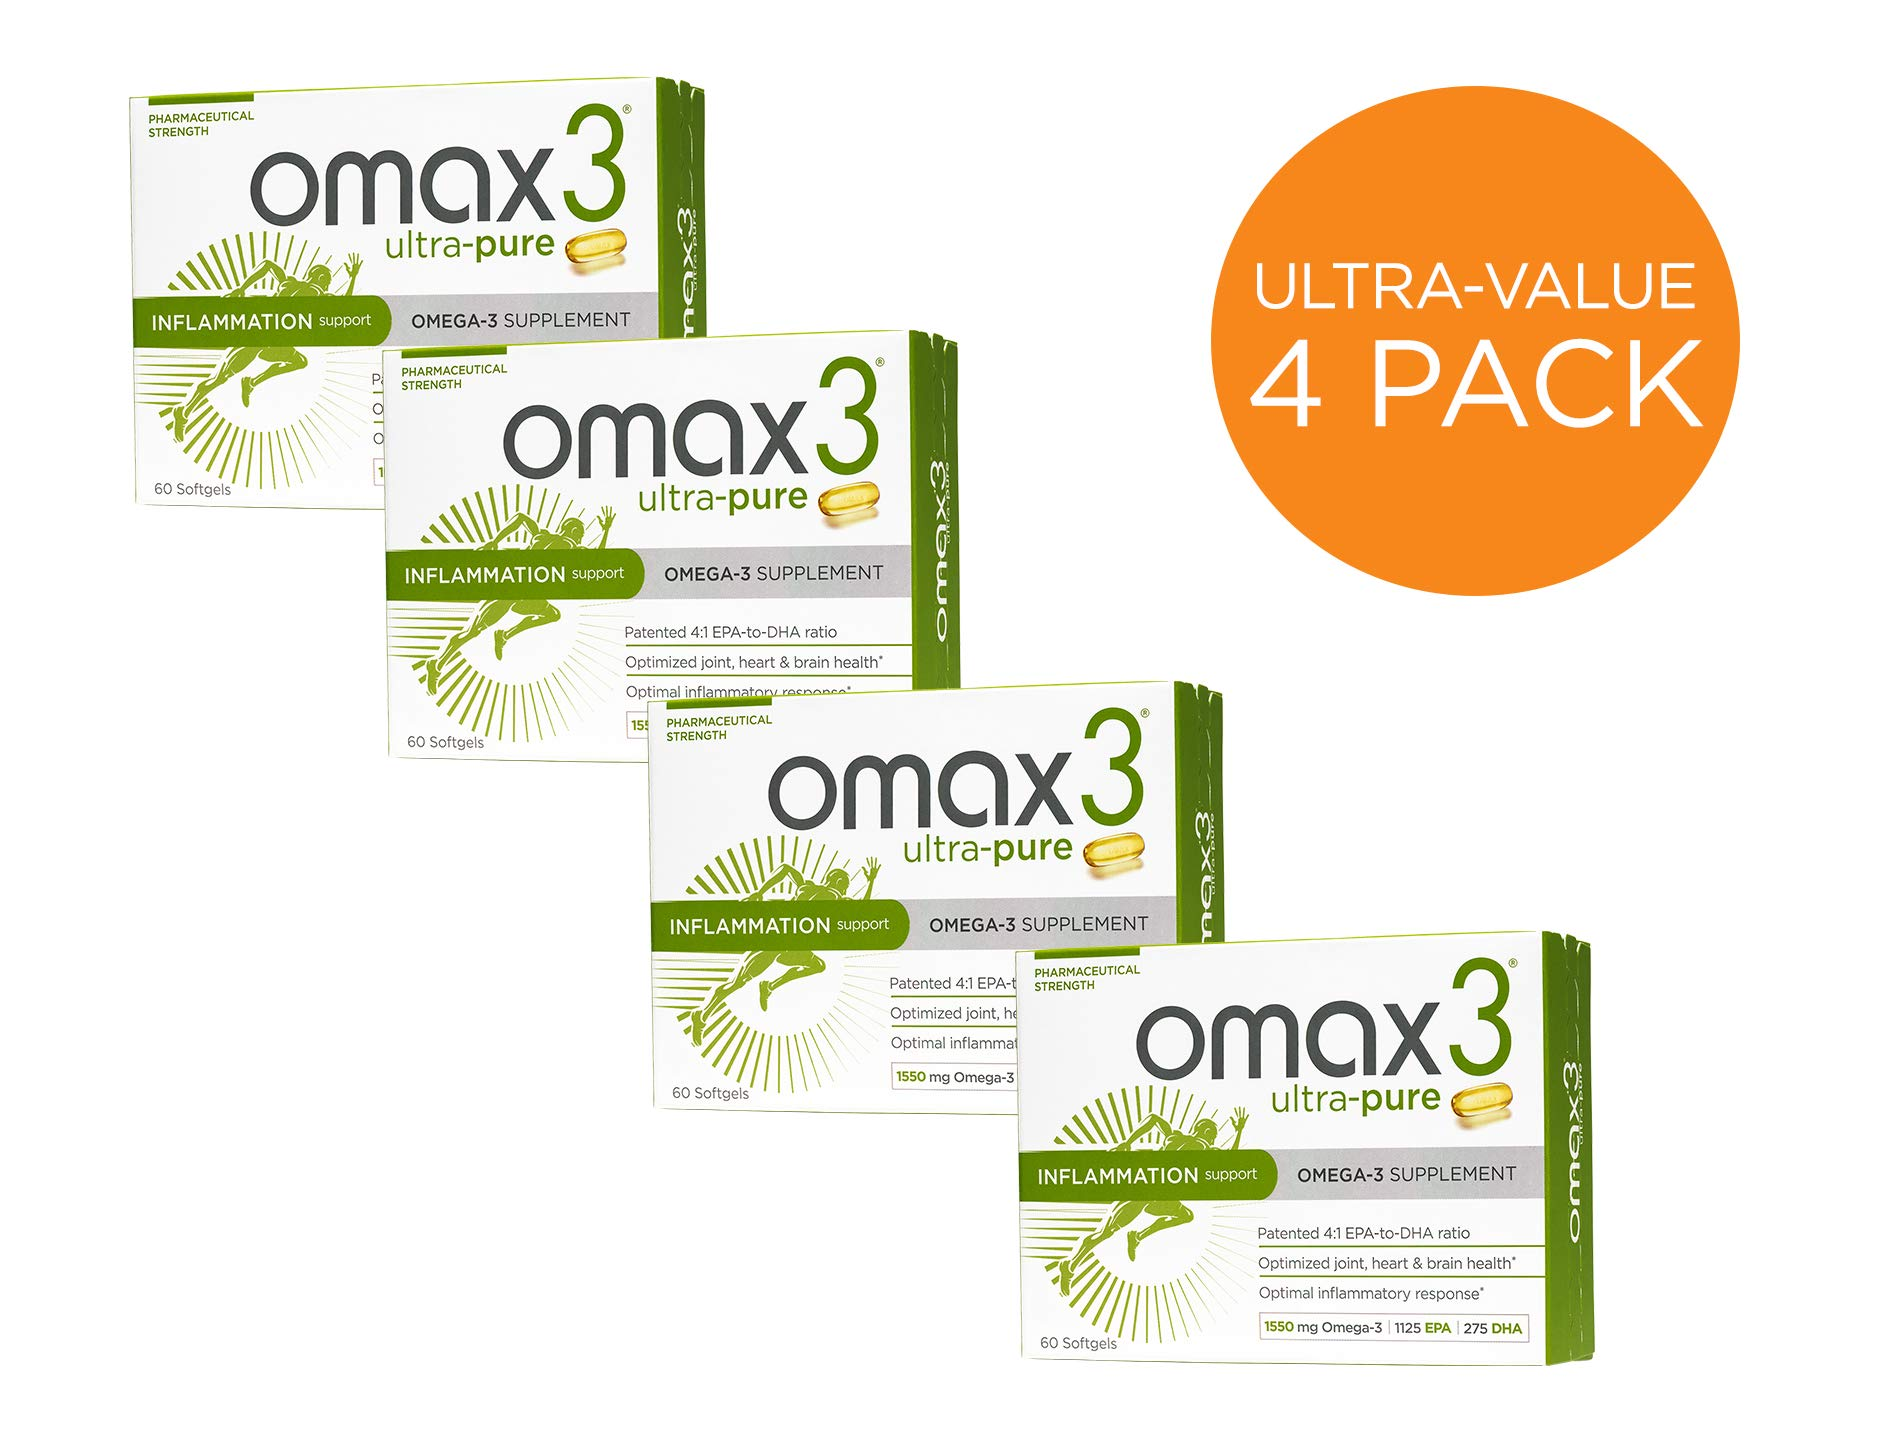 Omax3 Ultra Pure Omega 3 Fish Oil Supplements - 4 Boxes (240 Softgels)